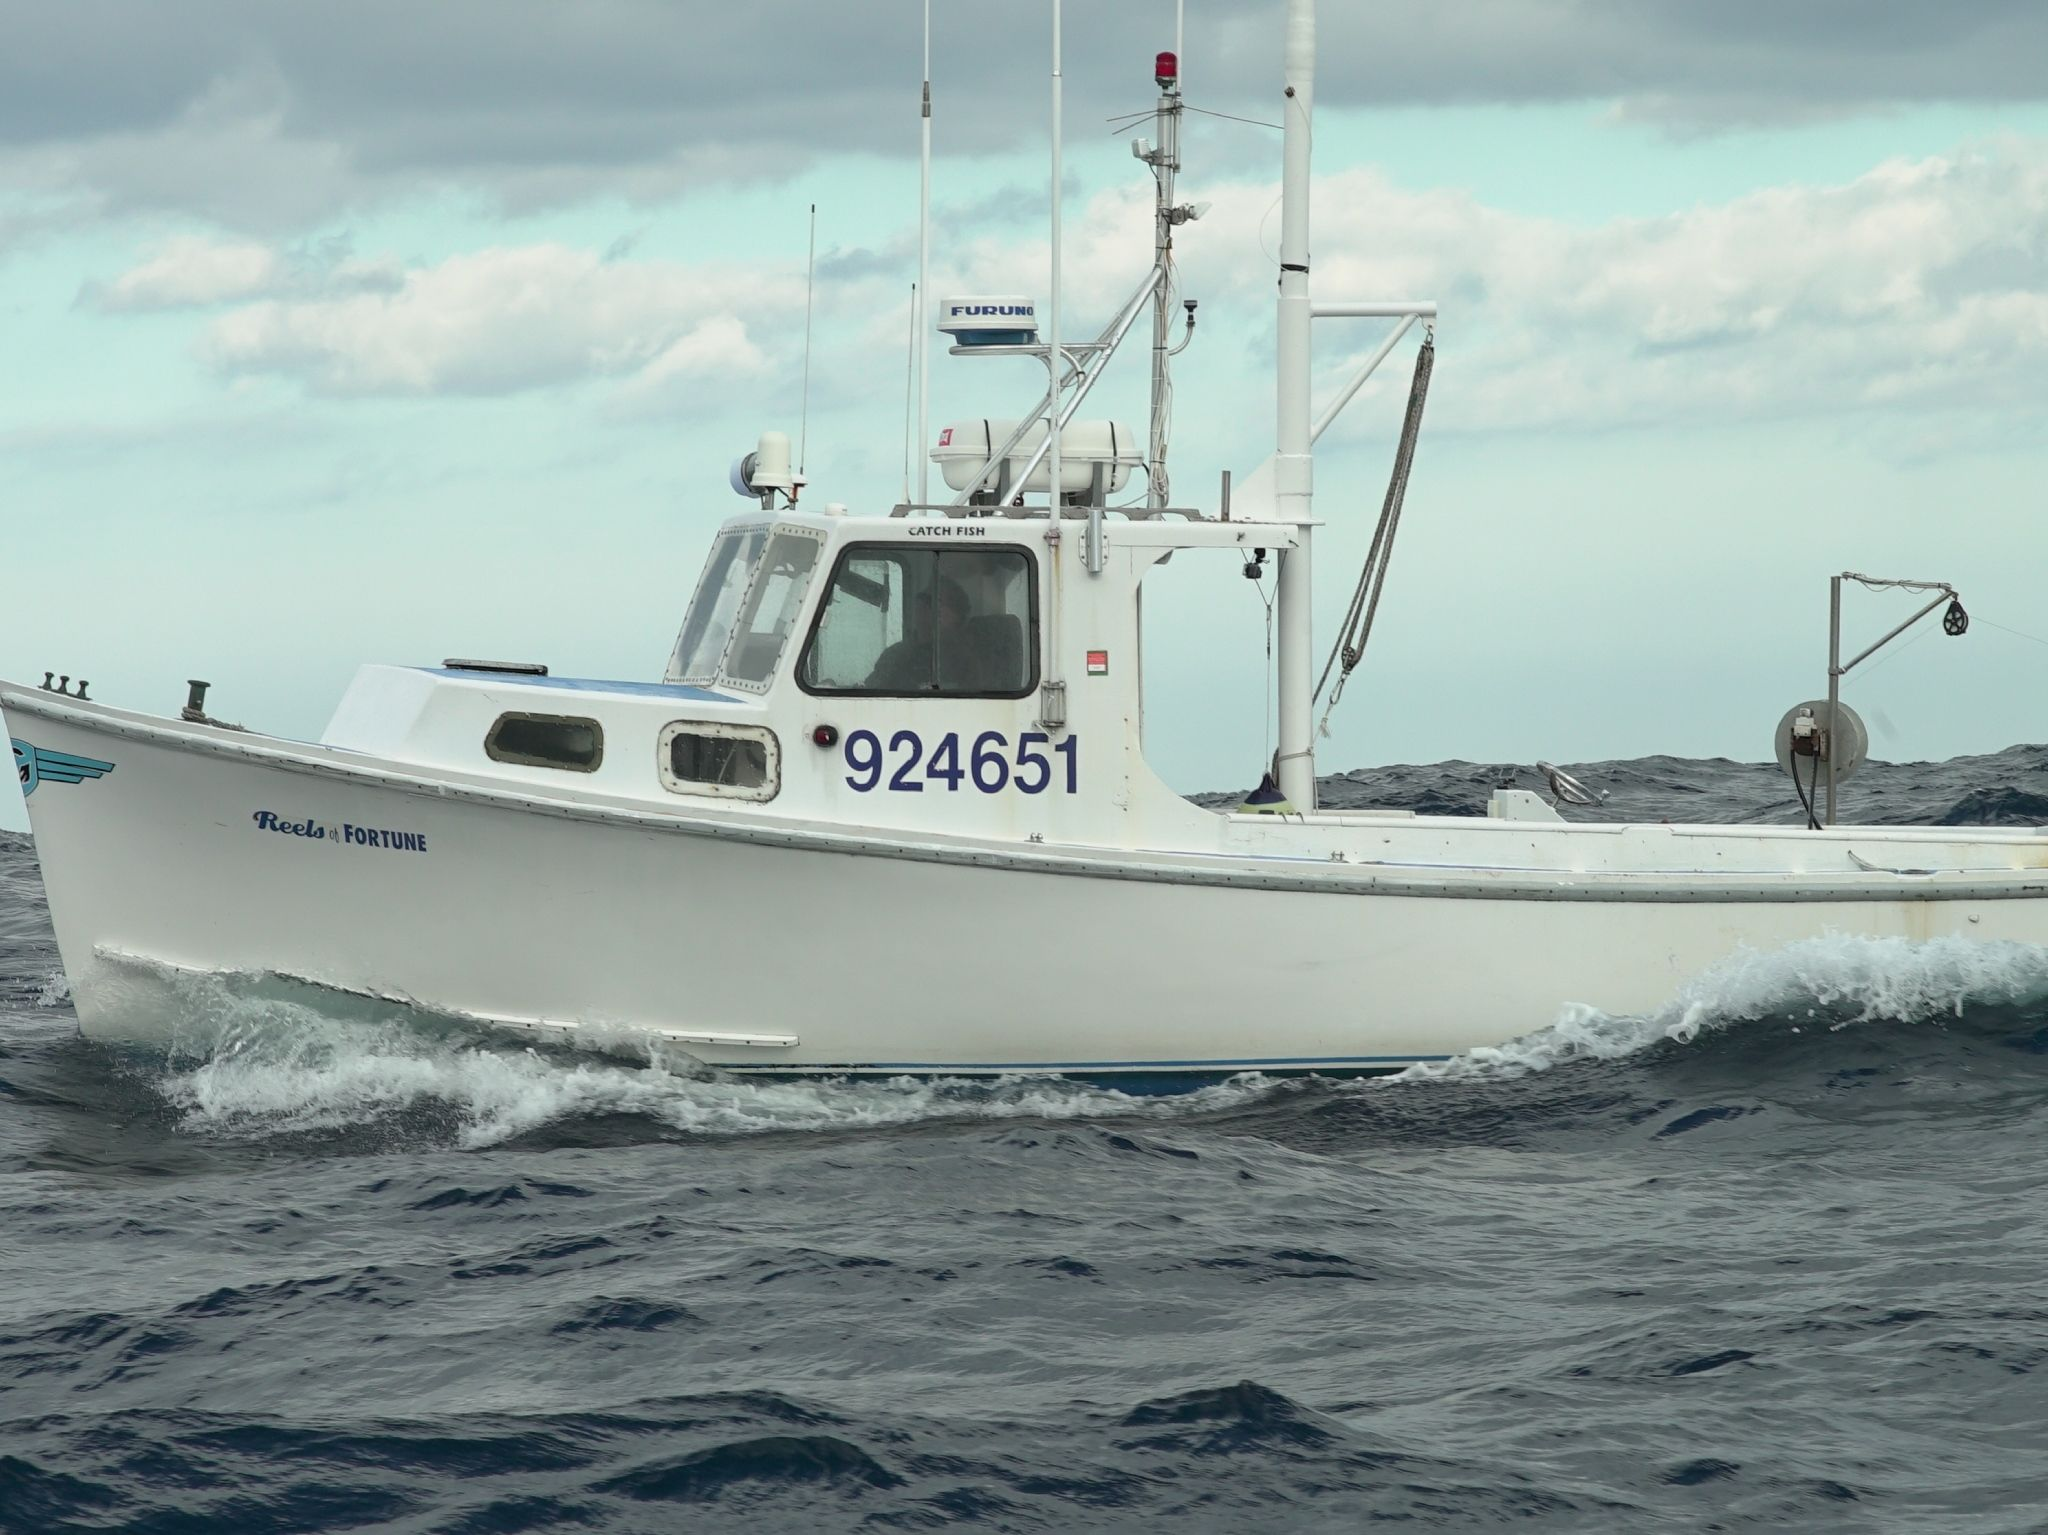 Outer Banks, NC. This is from Wicked Tuna: Outer Banks. [Photo of the day - August 2021]